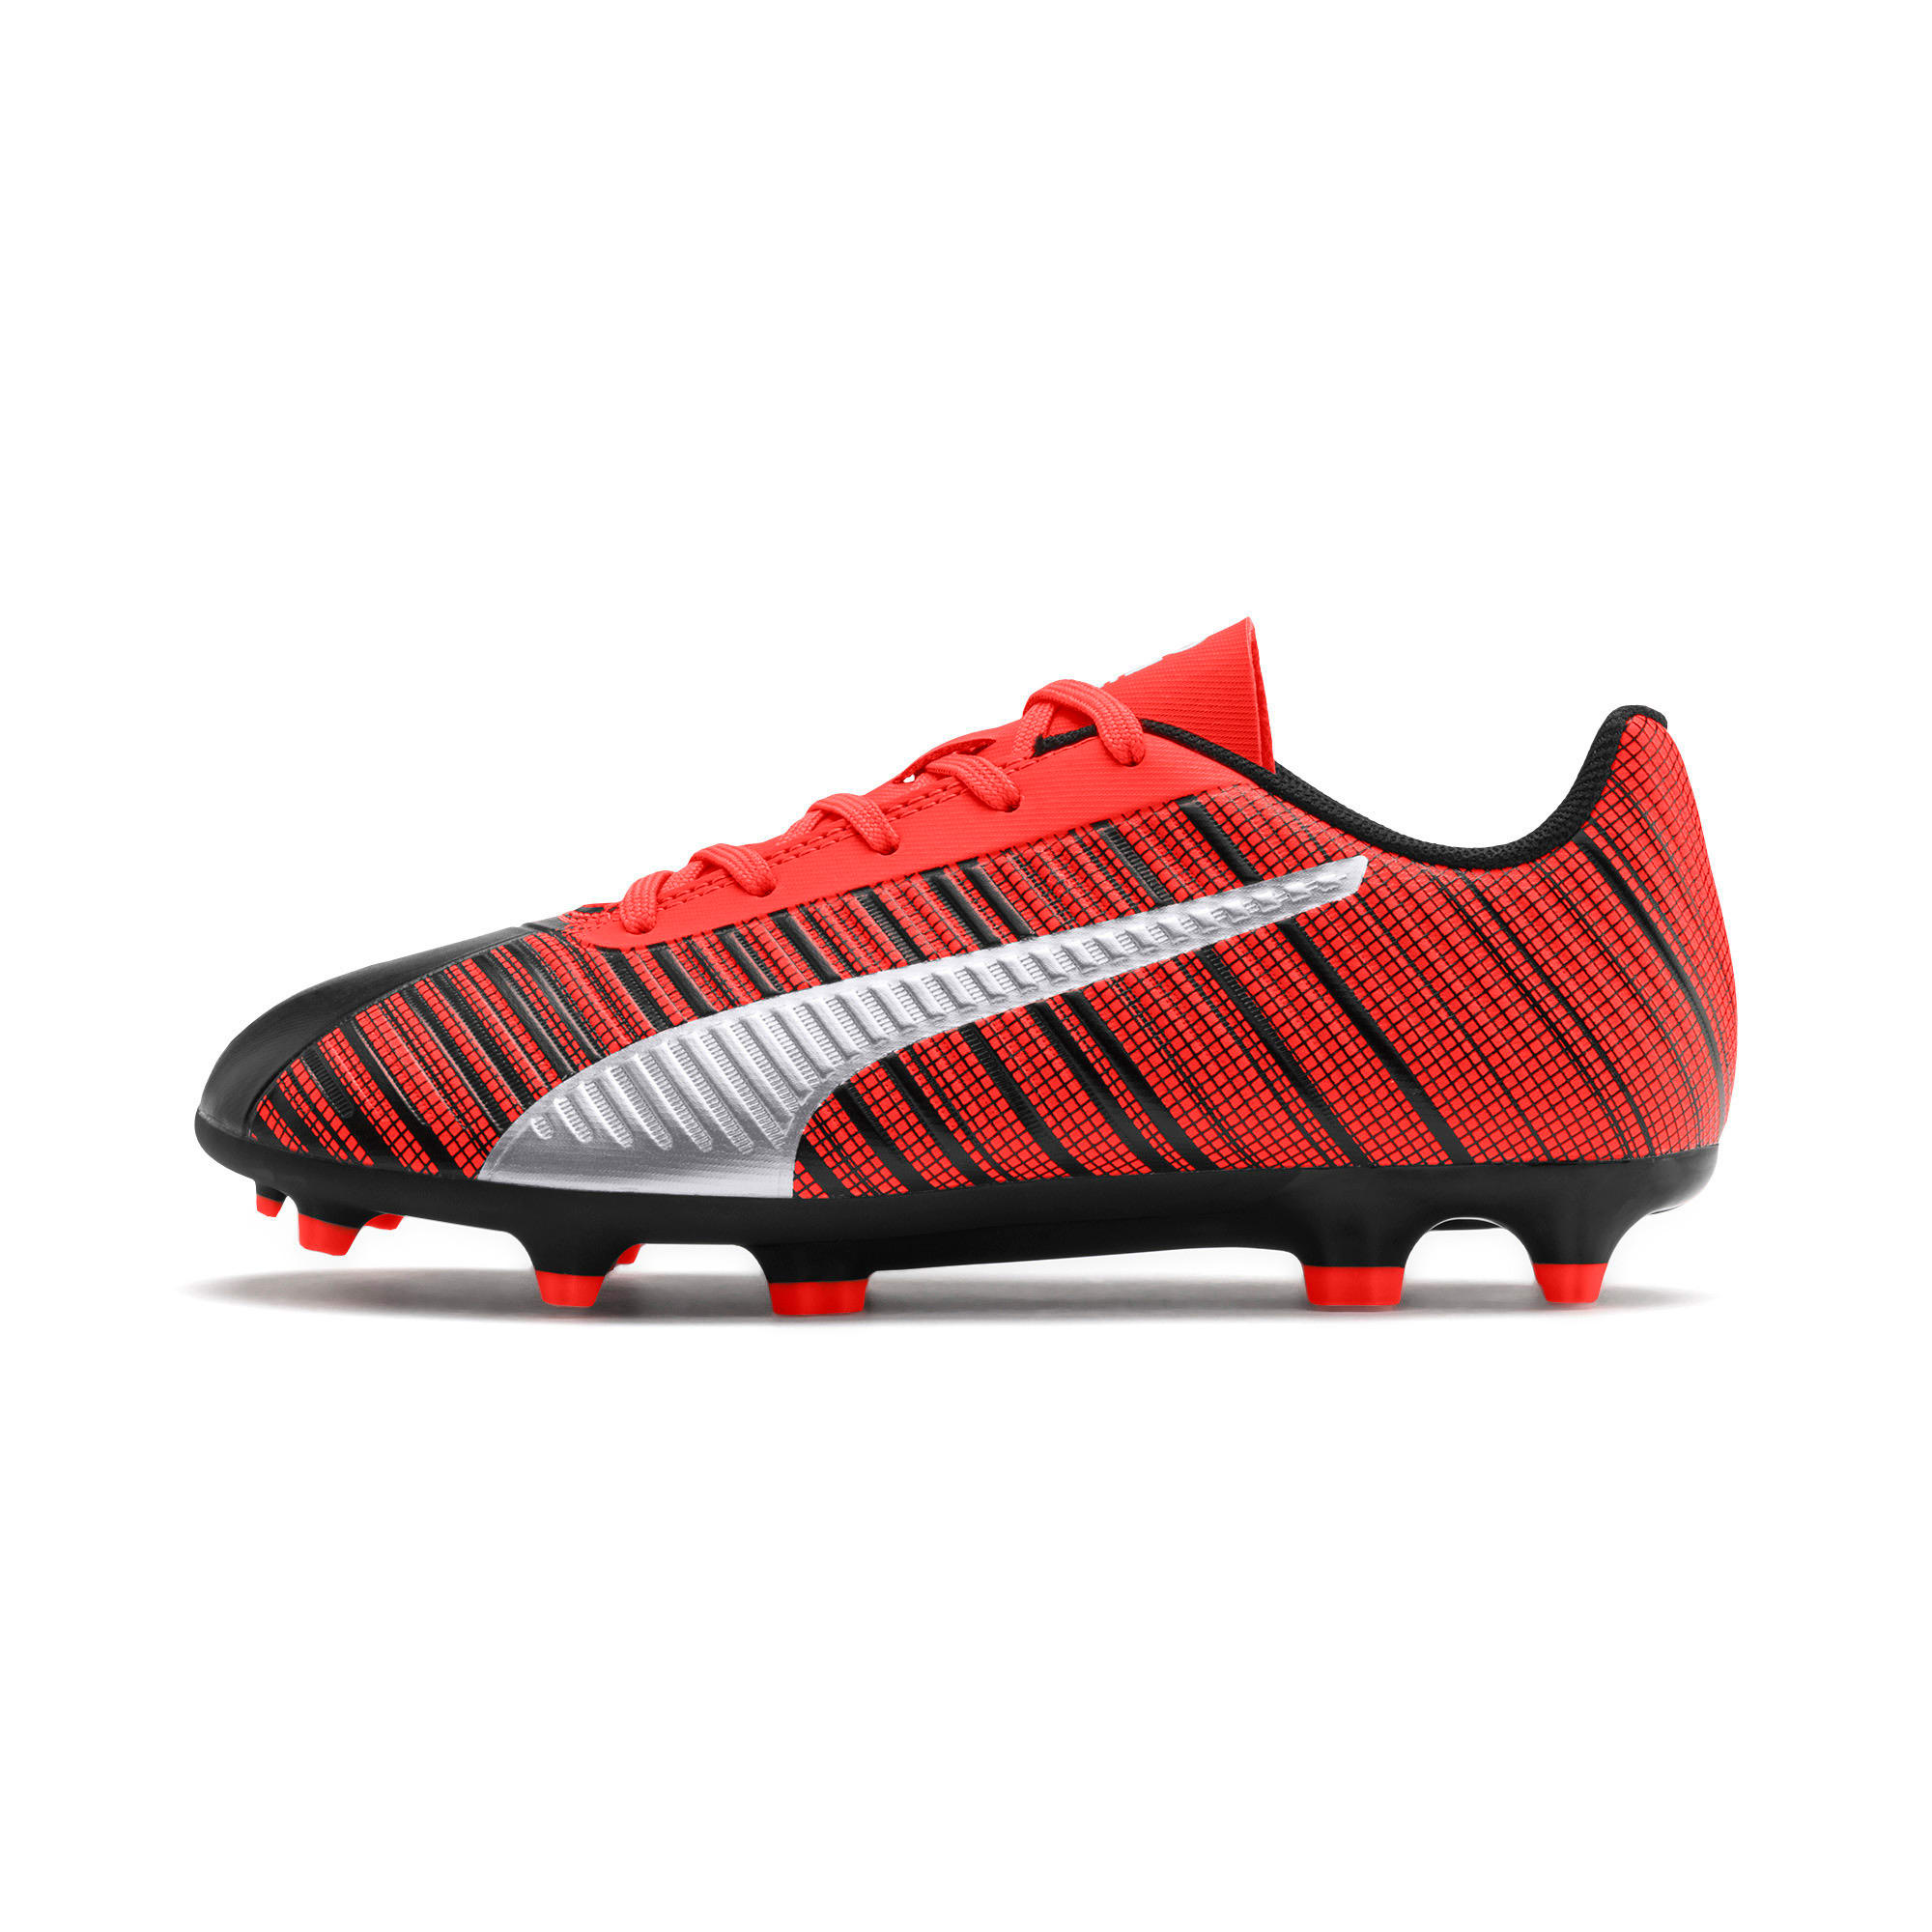 Thumbnail 1 of PUMA ONE 5.4 IT voetbalschoenen voor jongeren, Black-Nrgy Red-Aged Silver, medium